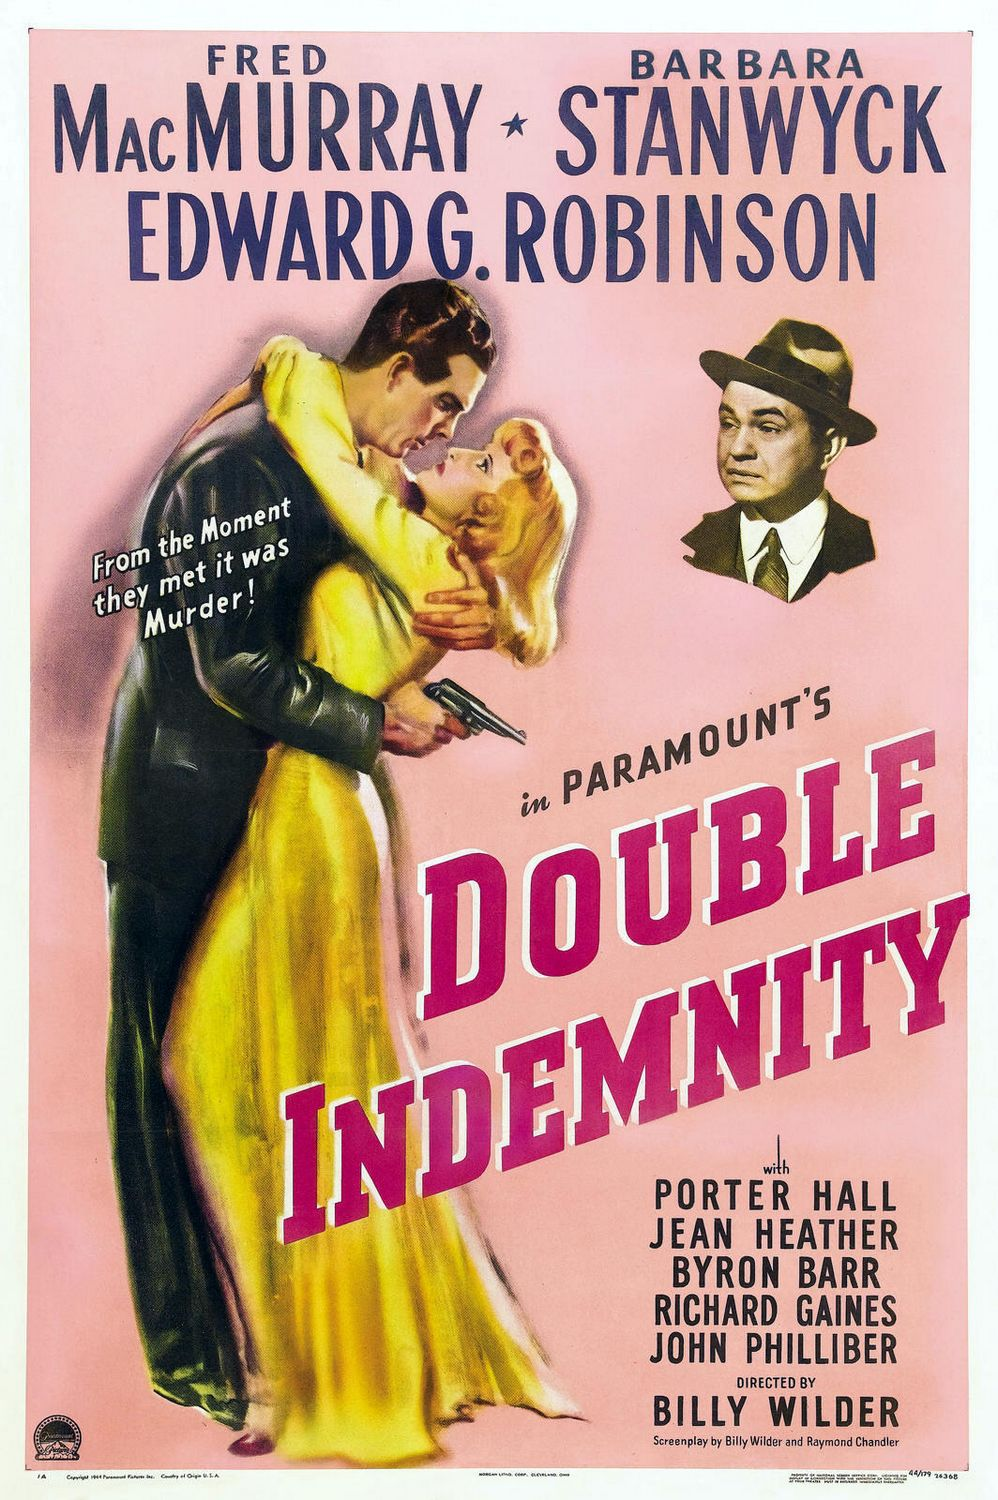 film noir essay film noir essay questions noir double indemnity  double indemnity film noir essay double indemnity film noir essay